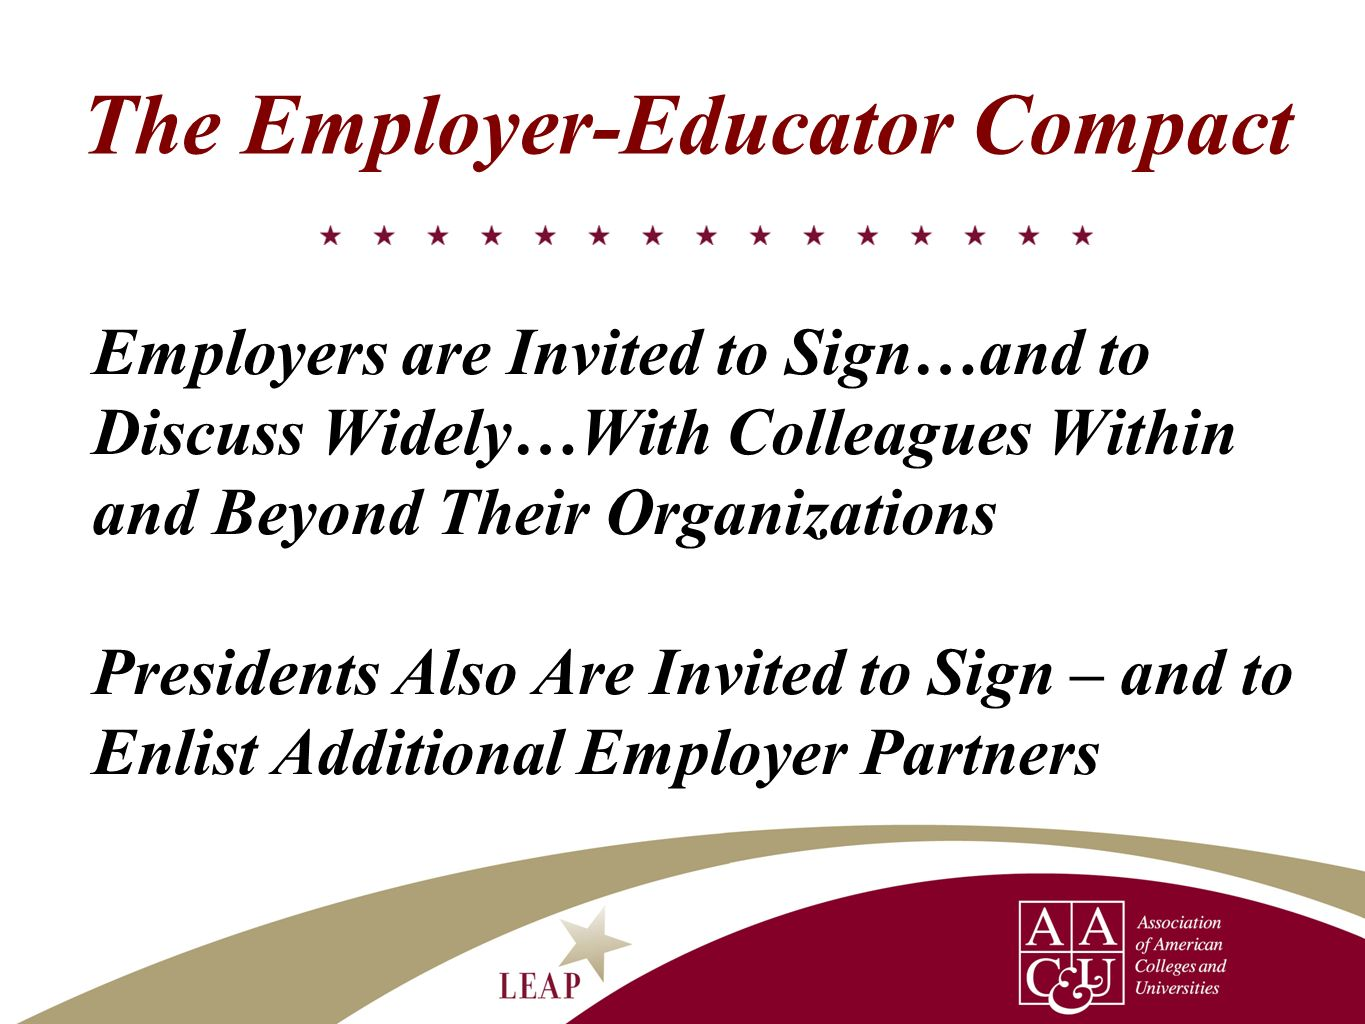 The Employer-Educator Compact